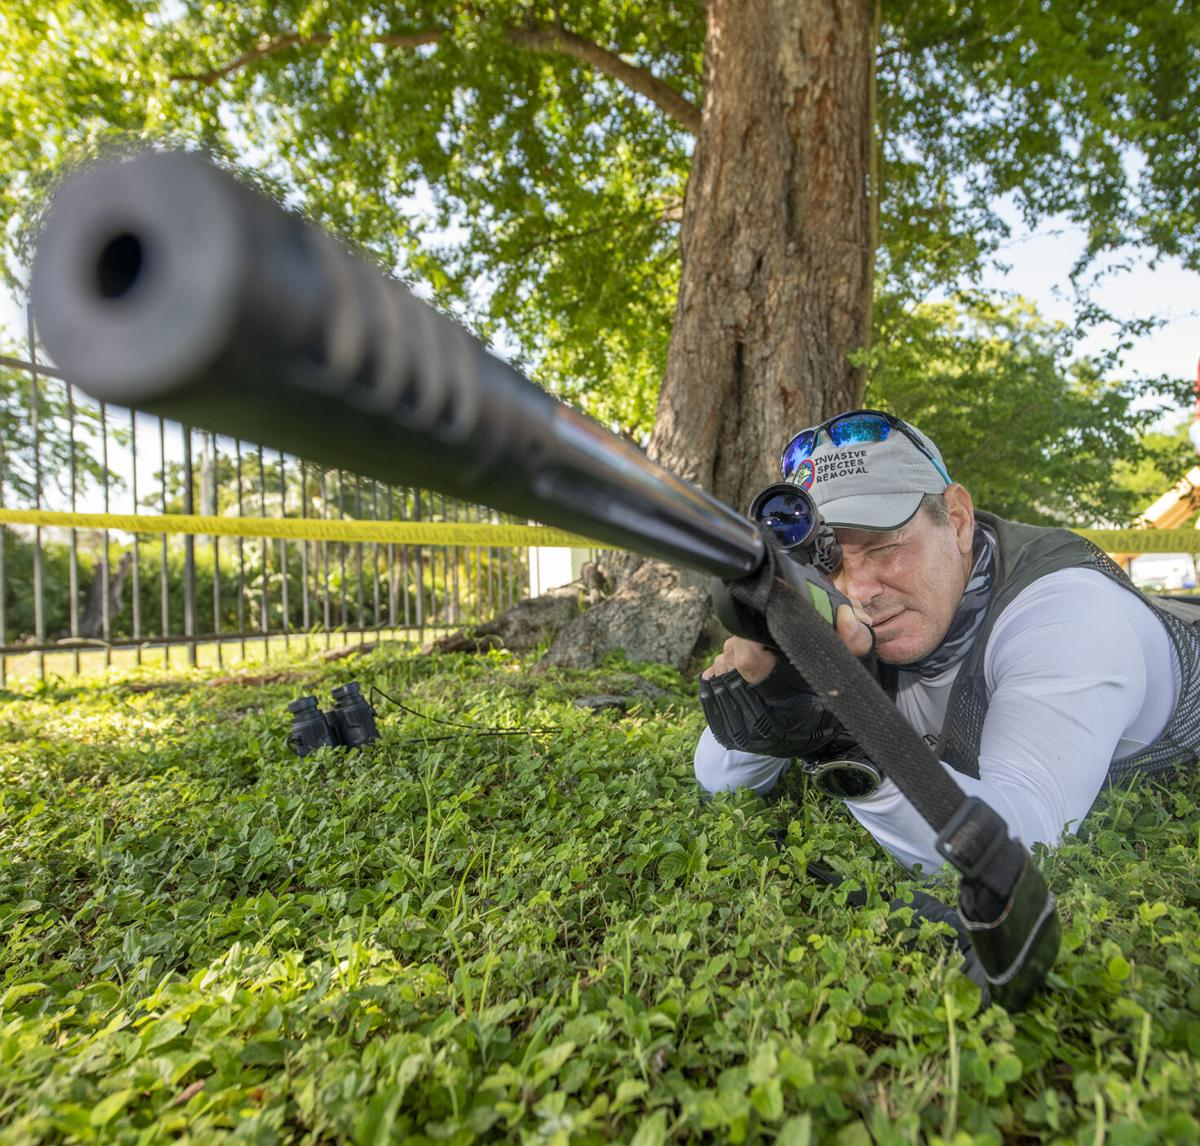 Growing iguana population problem prompts one man to hunt them for a living MAIN